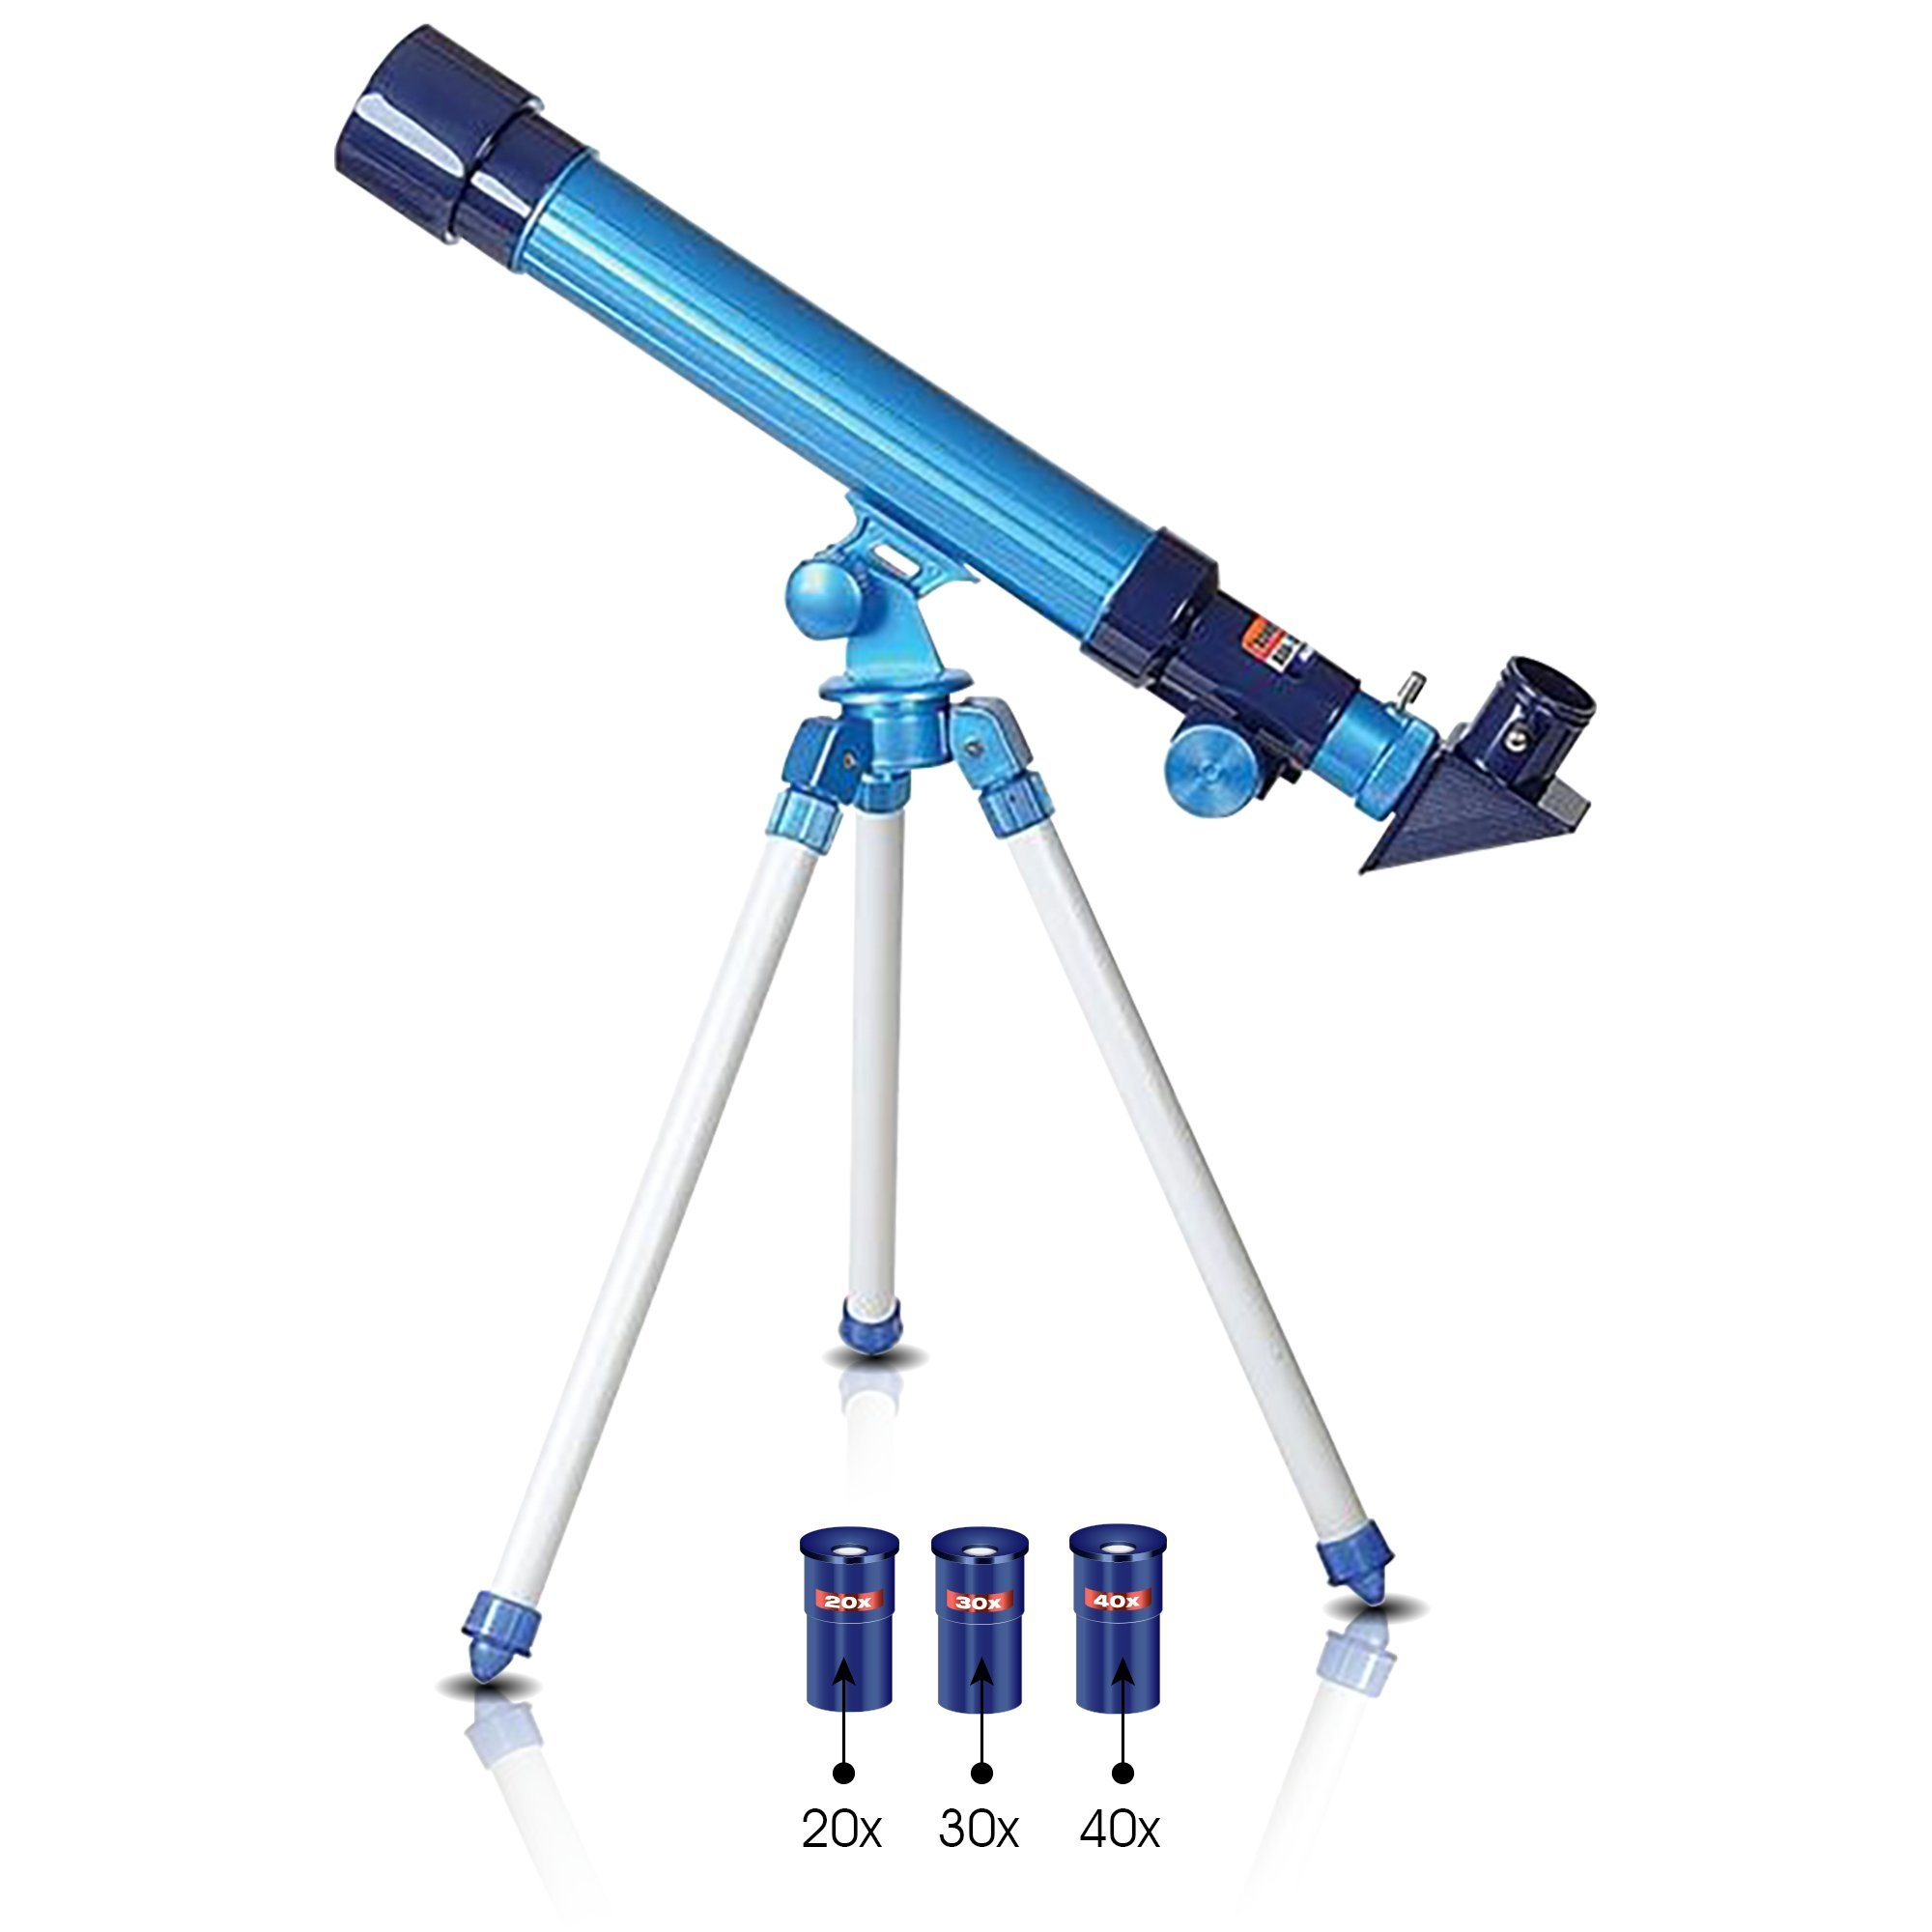 Telescope for Kids by ArtCreativity - Set Includes 3 Magnification Lenses, Diagonal Mirror, and Tripod Stand - Easy to Focus - Great Children's Educational Science - Microscope Toy for Boys and Girls by ArtCreativity